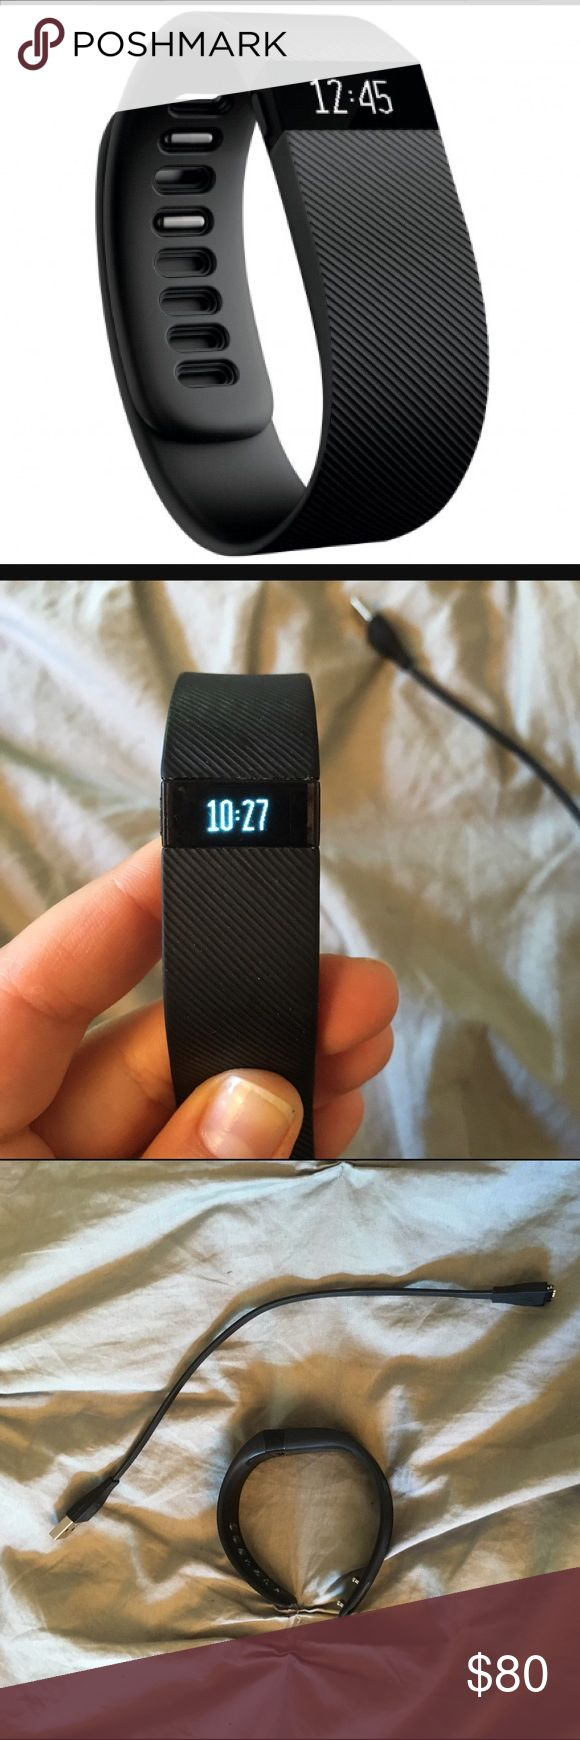 Black Fitbit charge small Selling my black Fitbit charge, size s. Works perfectly and comes with charging cable. I originally bought it for $130, and it's still in great condition. I don't need it anymore because I got a Charge HR. (Decorative cover available with bundle, see closet) Fitbit Accessories Watches